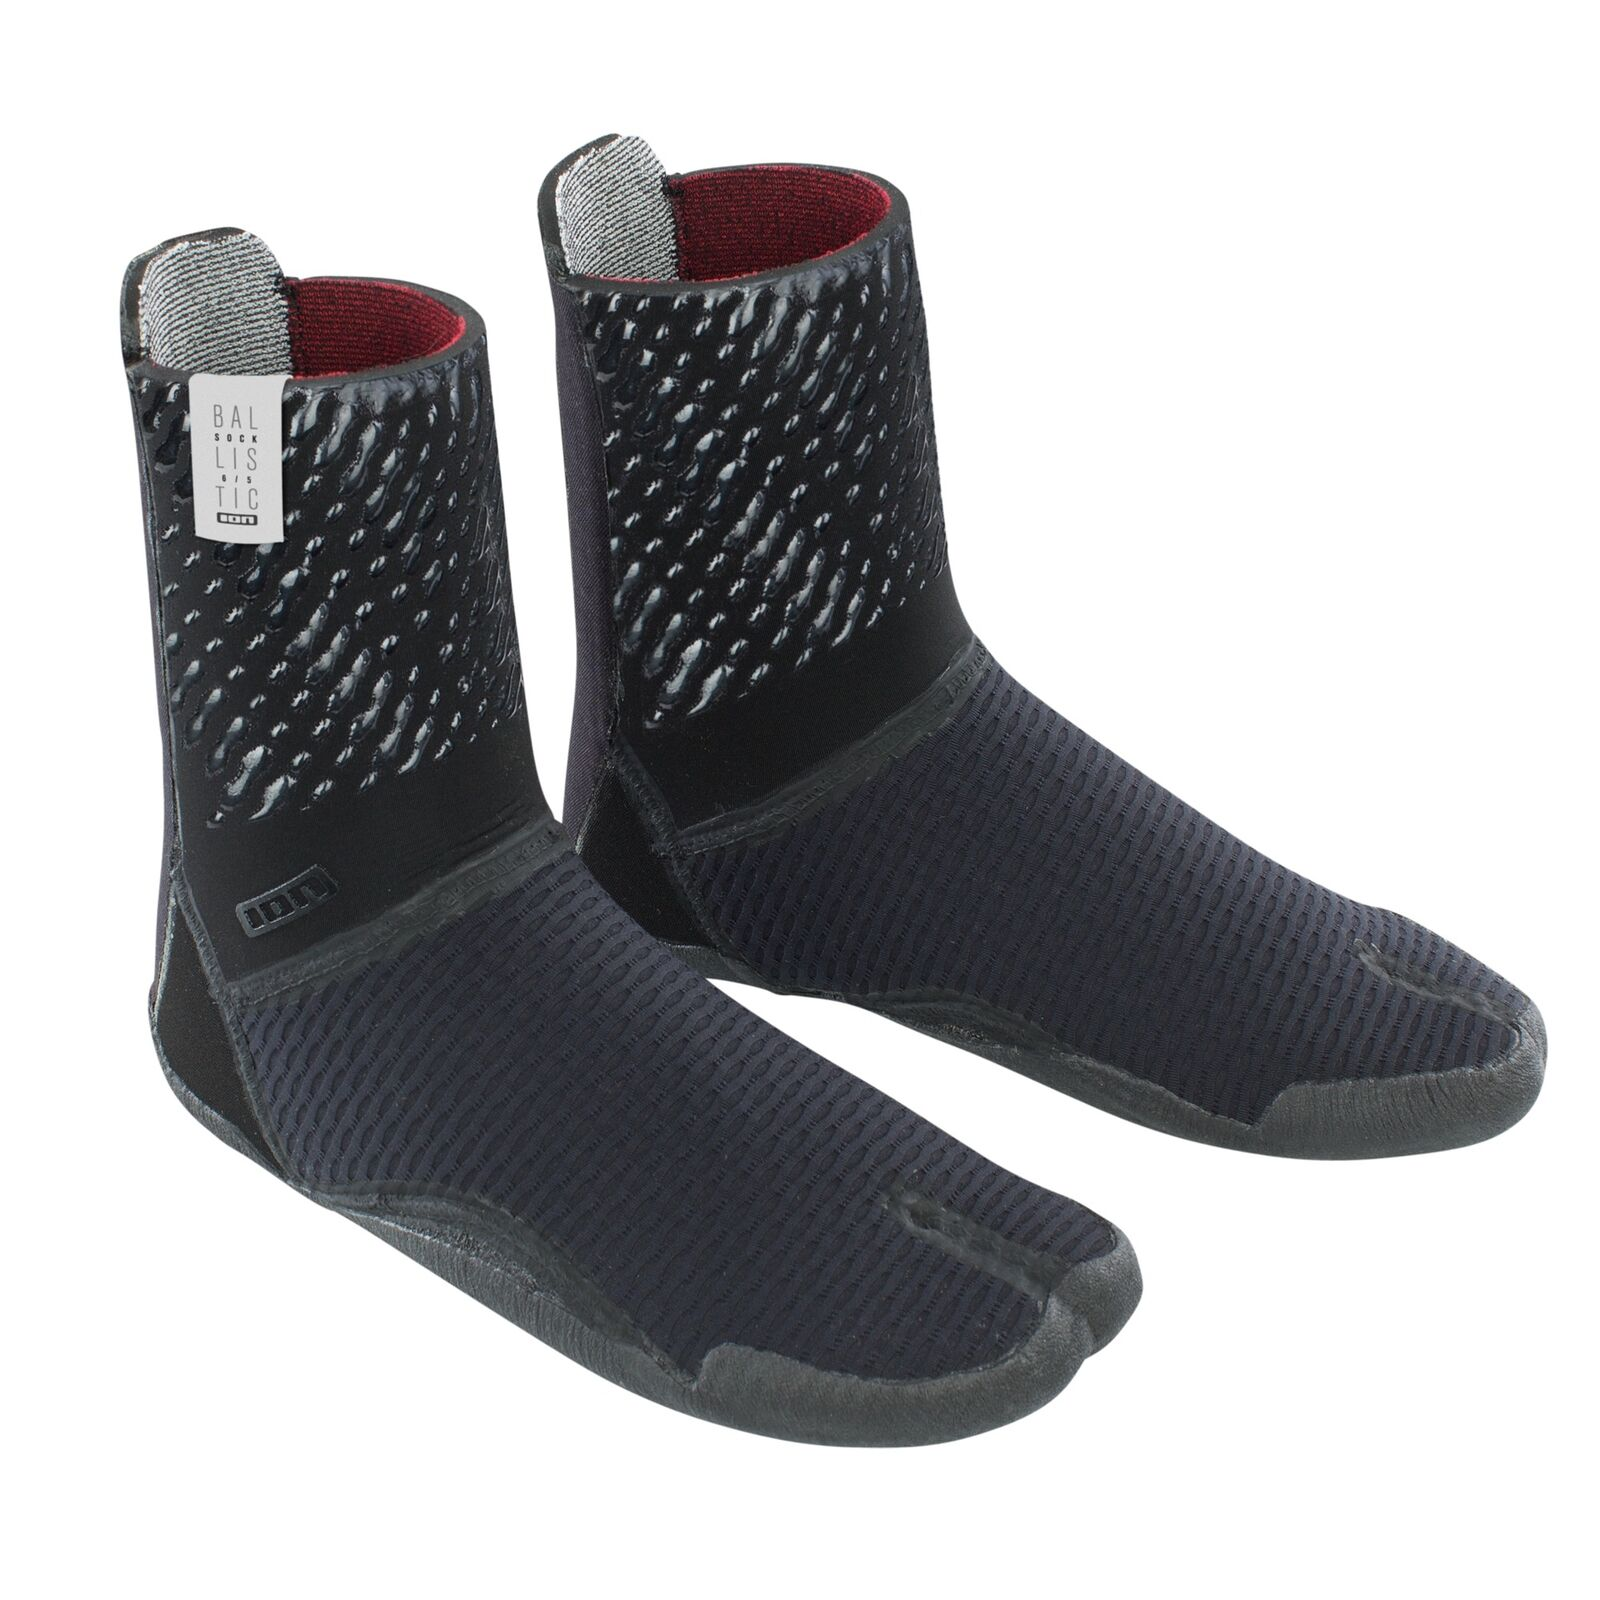 Ion Ballistic socks 6 5 is neopreno zapatos